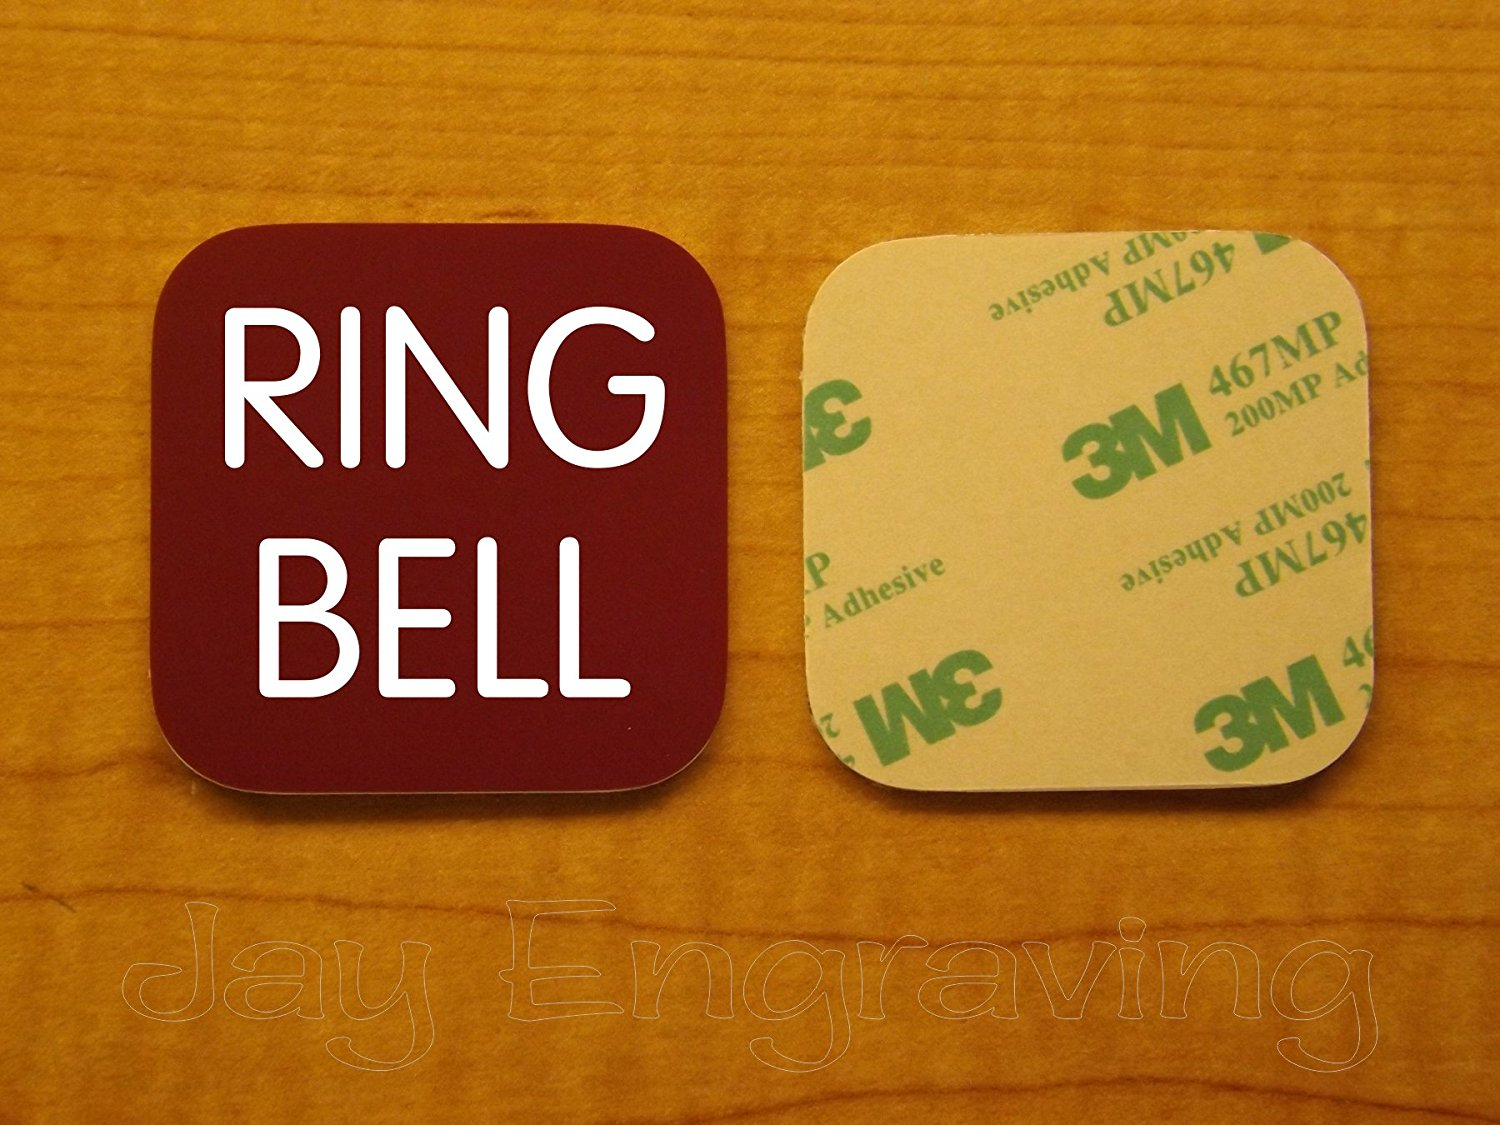 Get quotations · engraved 3x3 inch ring bell adhesive backed plate door bell name tag sign